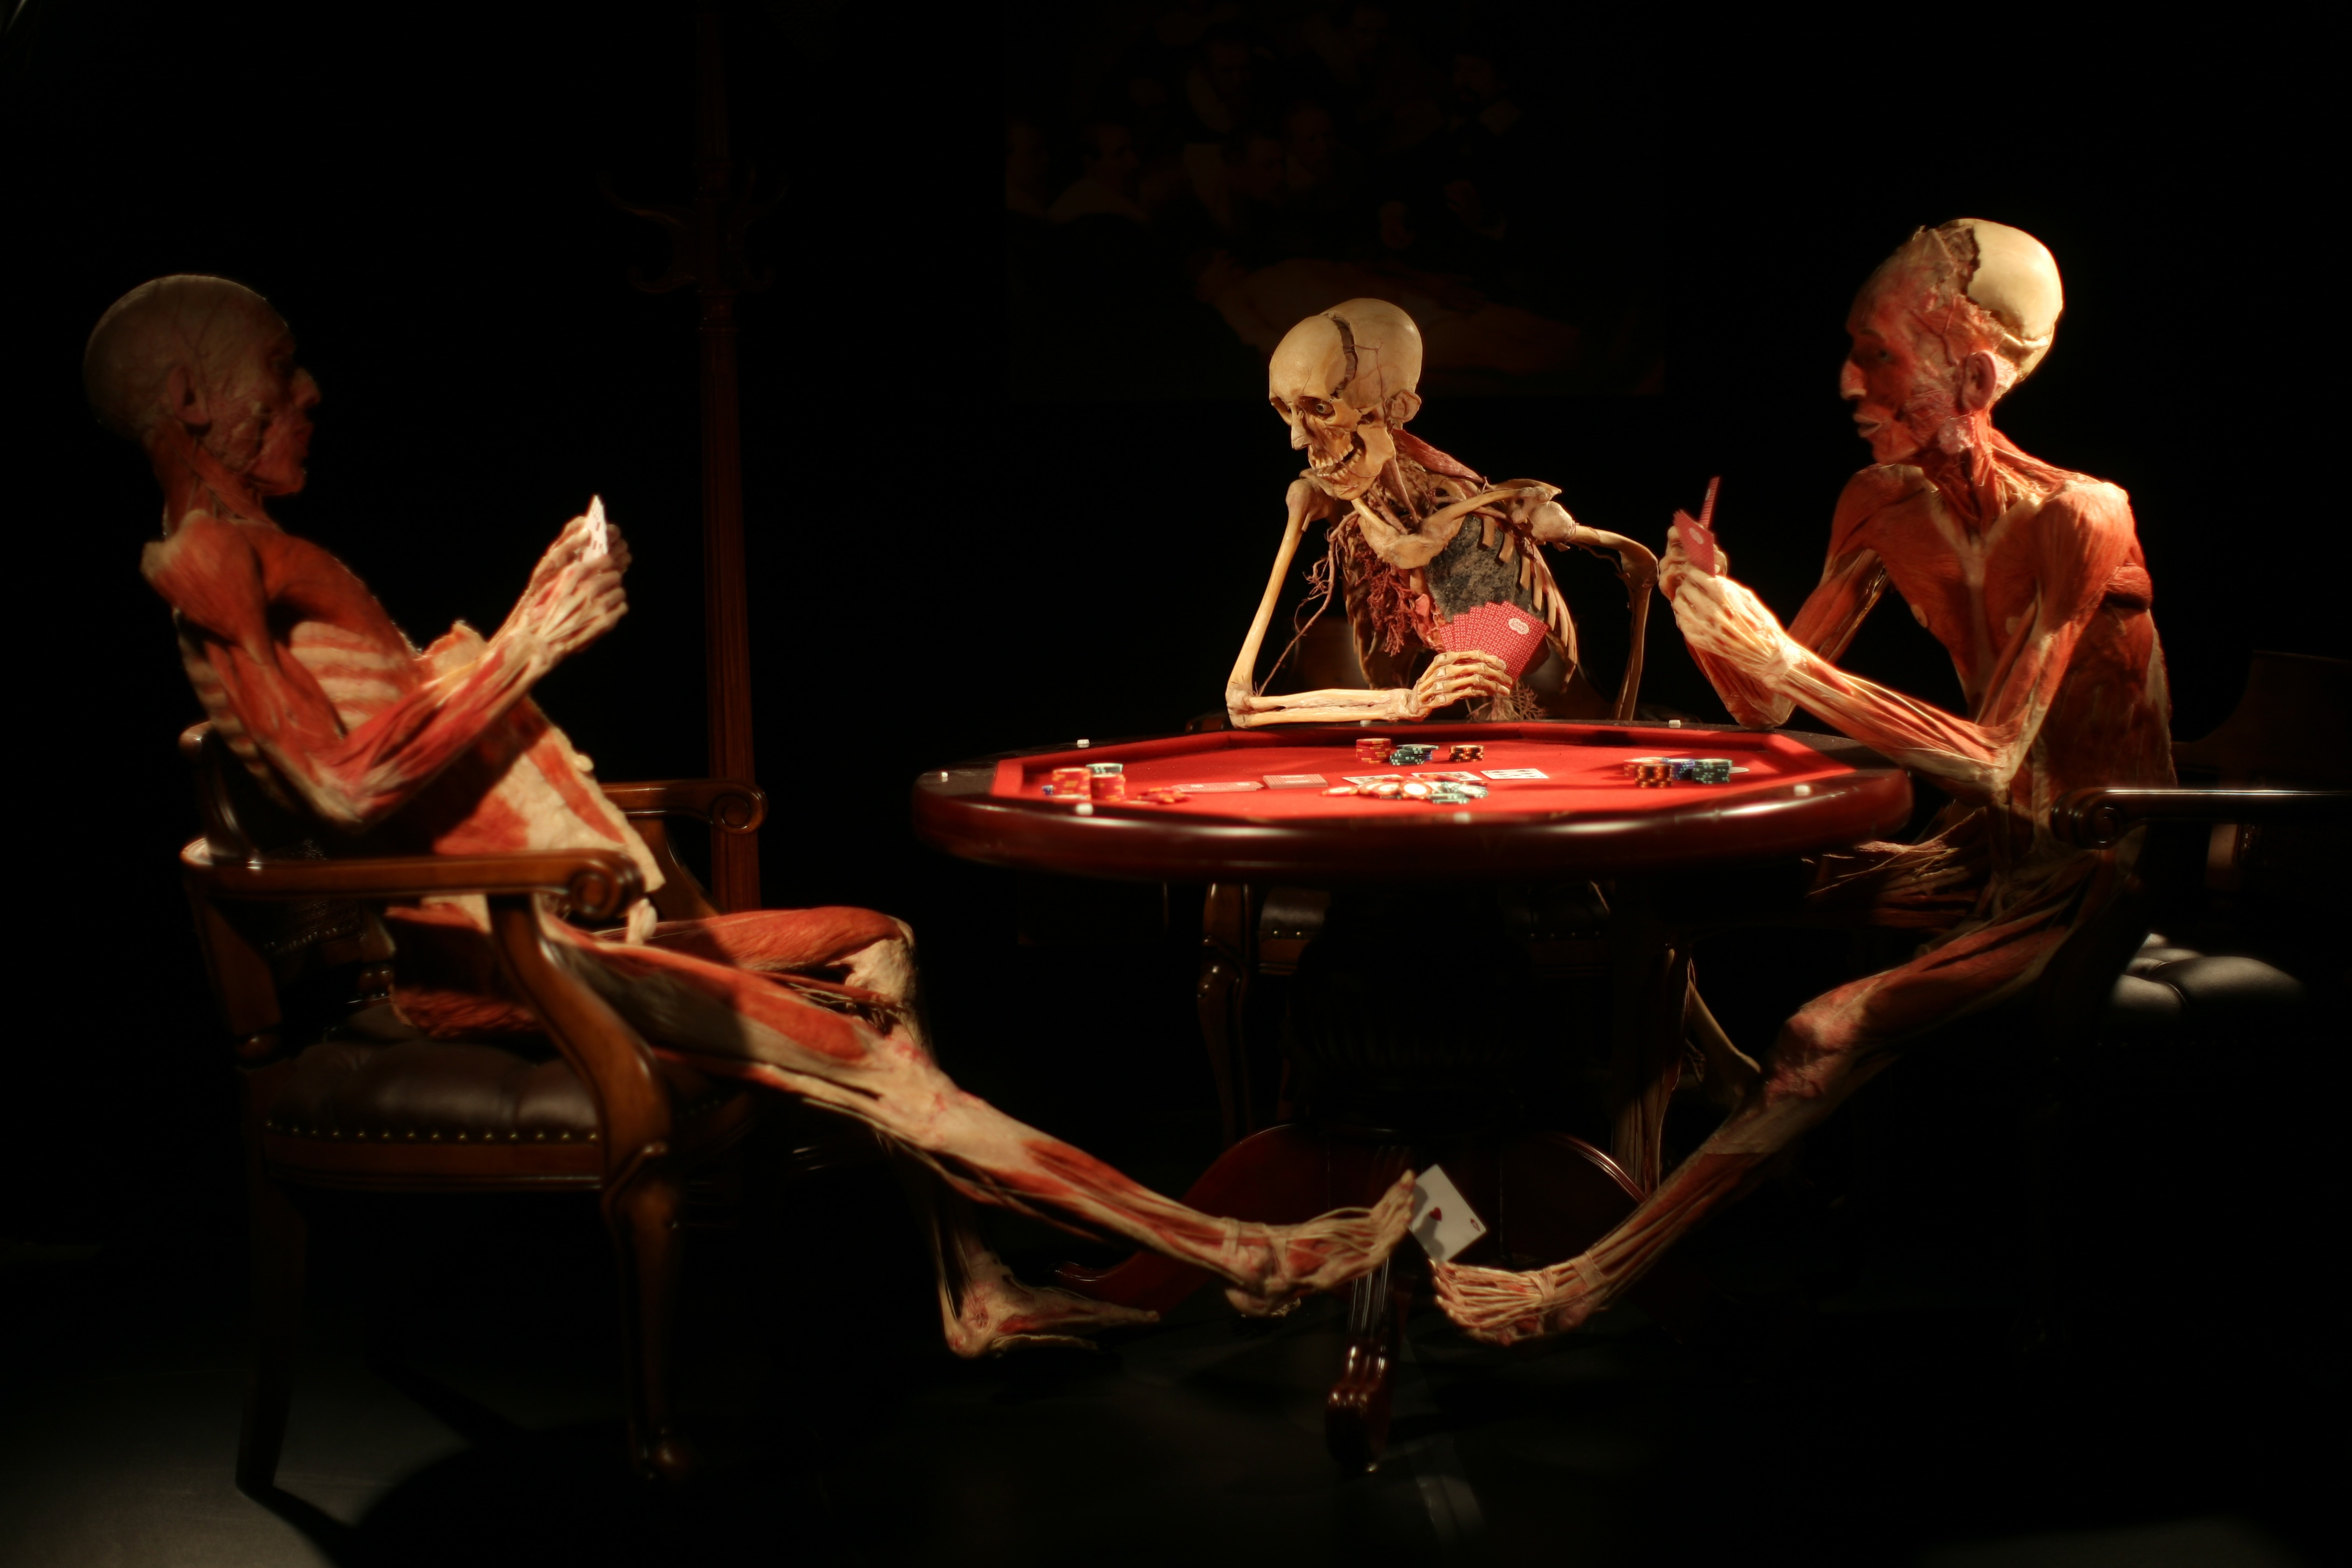 Uriel Sinai/Getty Images. Plastinated bodies are posed up around a poker table at the 'Body Worlds' international exhibit April 6, 2009 in the northern Israeli city of Haifa . Haifa's Cheif Rabbi She'ar-Yashuv Cohen has called on the public to boycott the exhibition due to issues relating to kavod adam (human dignity) and Halacha (Jewish law) of burying a corpse. Dr Gunther von Hagens' travelling exhibition of plastinated human bodies and body parts will be on display in Israel for about three months.